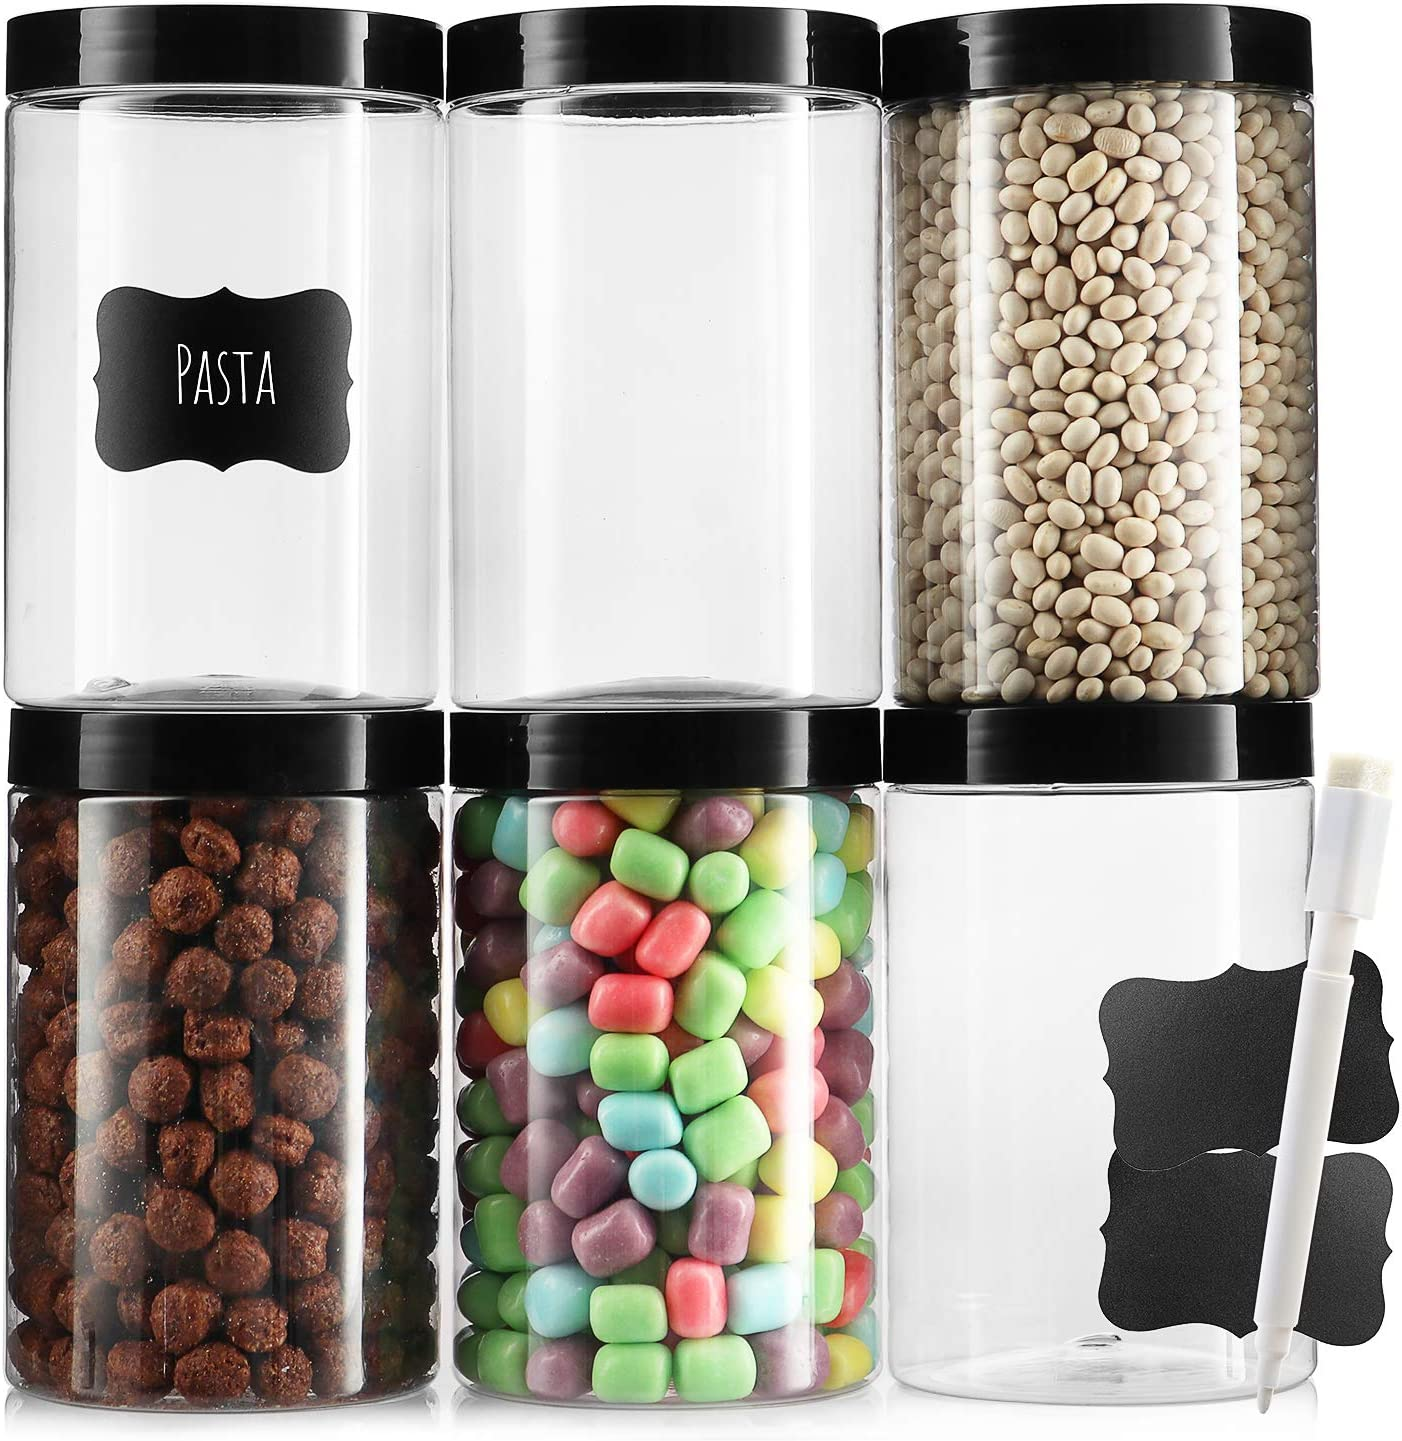 Pack of 6 - Clear Empty Plastic Storage containers with Lids - Round Plastic Containers - Plastic Jars with Lids and Labels – BPA Free Plastic Jar - Food Grade Air Tight – Pantry Canisters